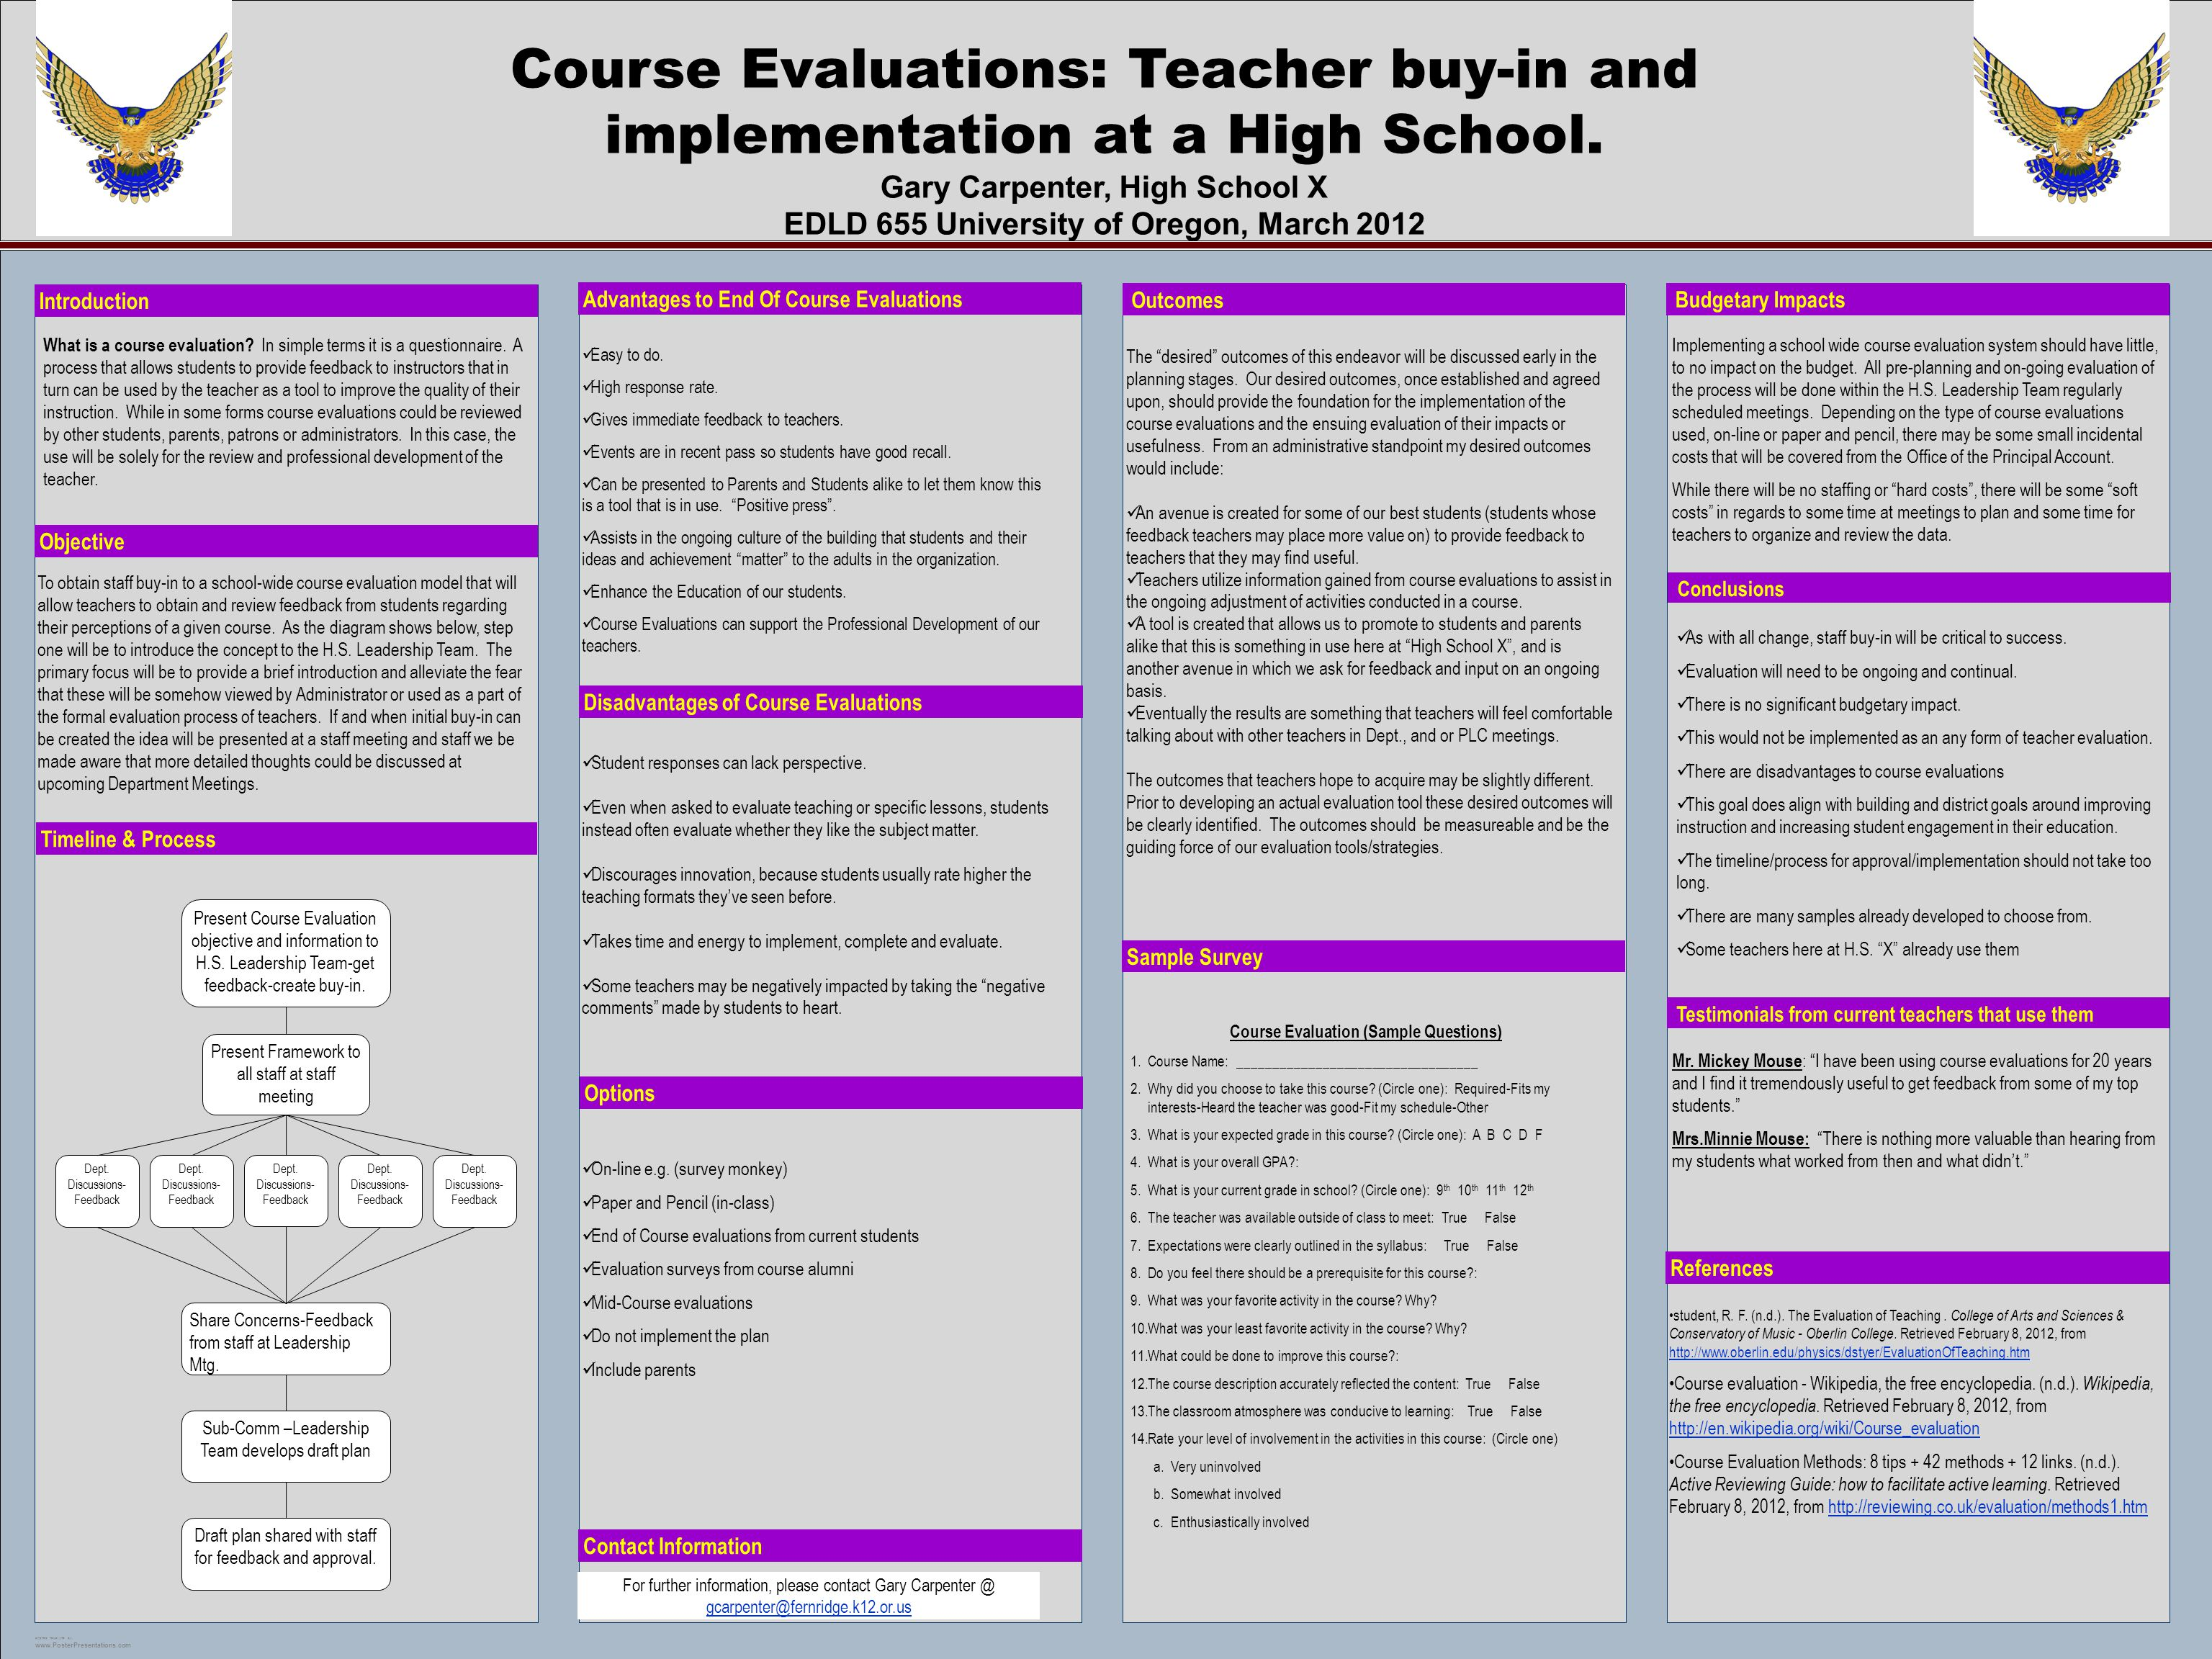 POSTER TEMPLATE BY: www.PosterPresentations.com Course Evaluations: Teacher buy-in and implementation at a High School. Gary Carpenter, High School X